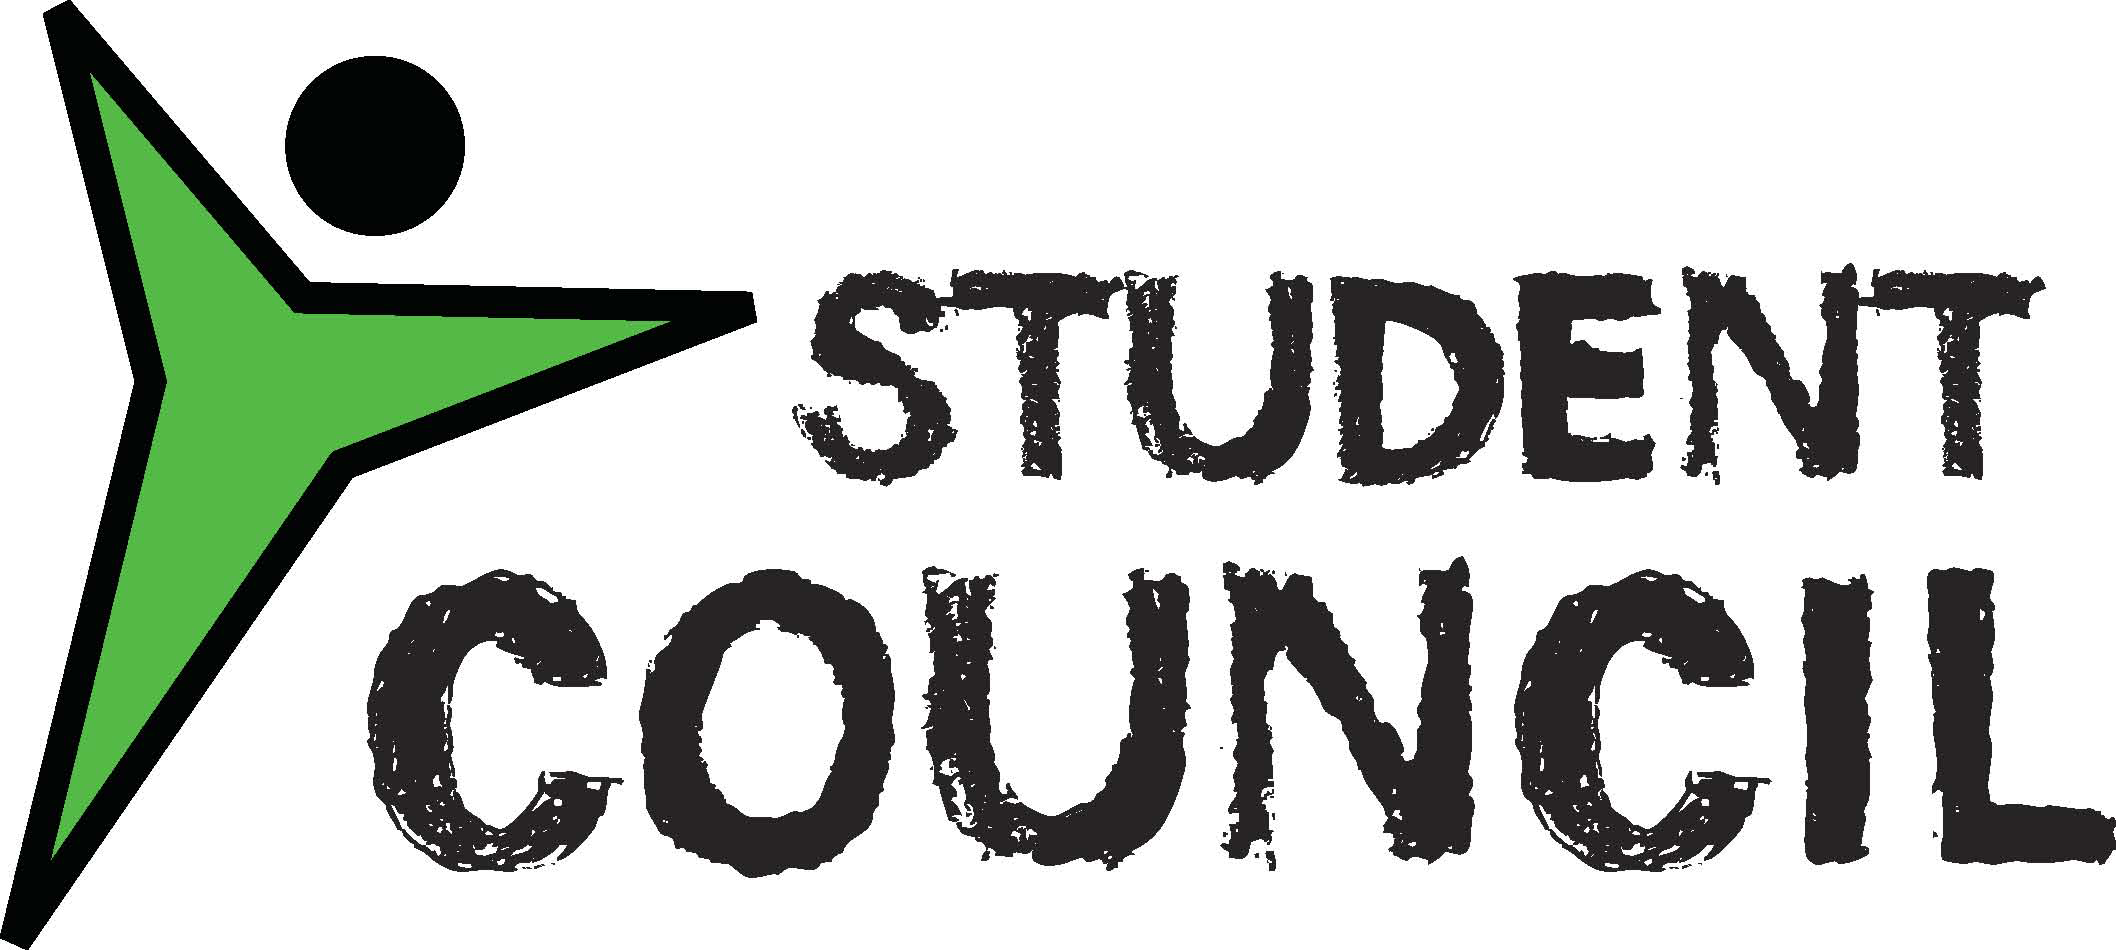 School election clipart graphic black and white stock Student Council Clipart Image Group (55+) graphic black and white stock